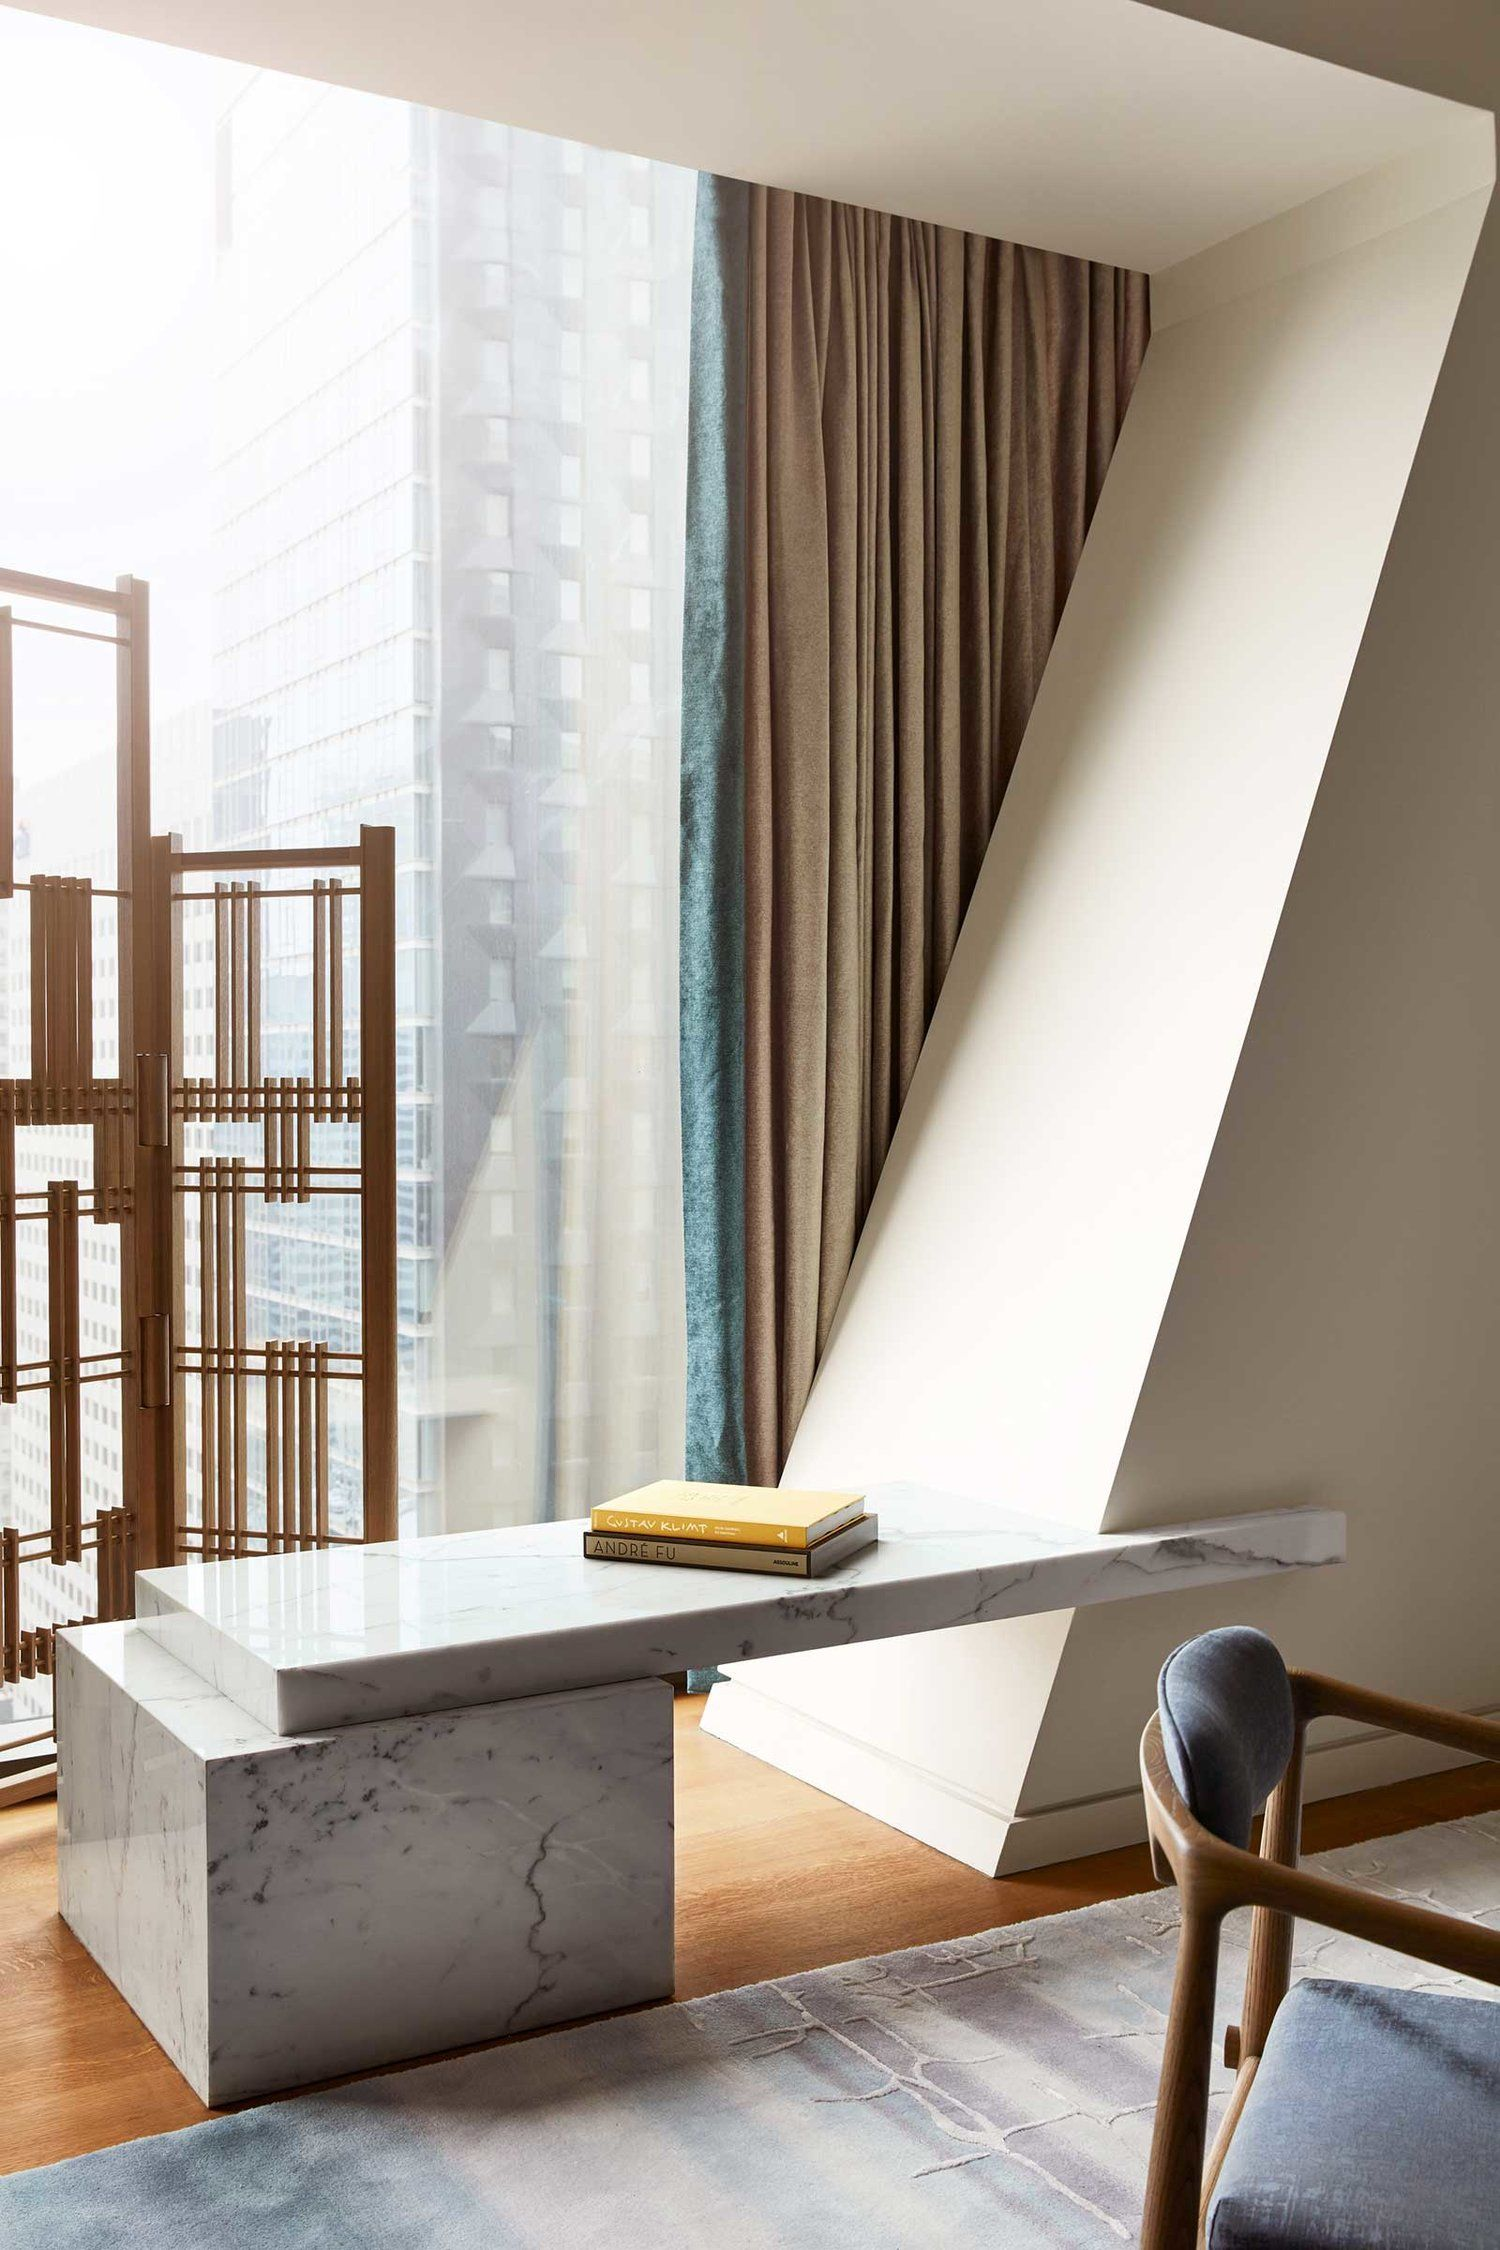 Endo Room Design: André Fu Designs His First Apartment In The US